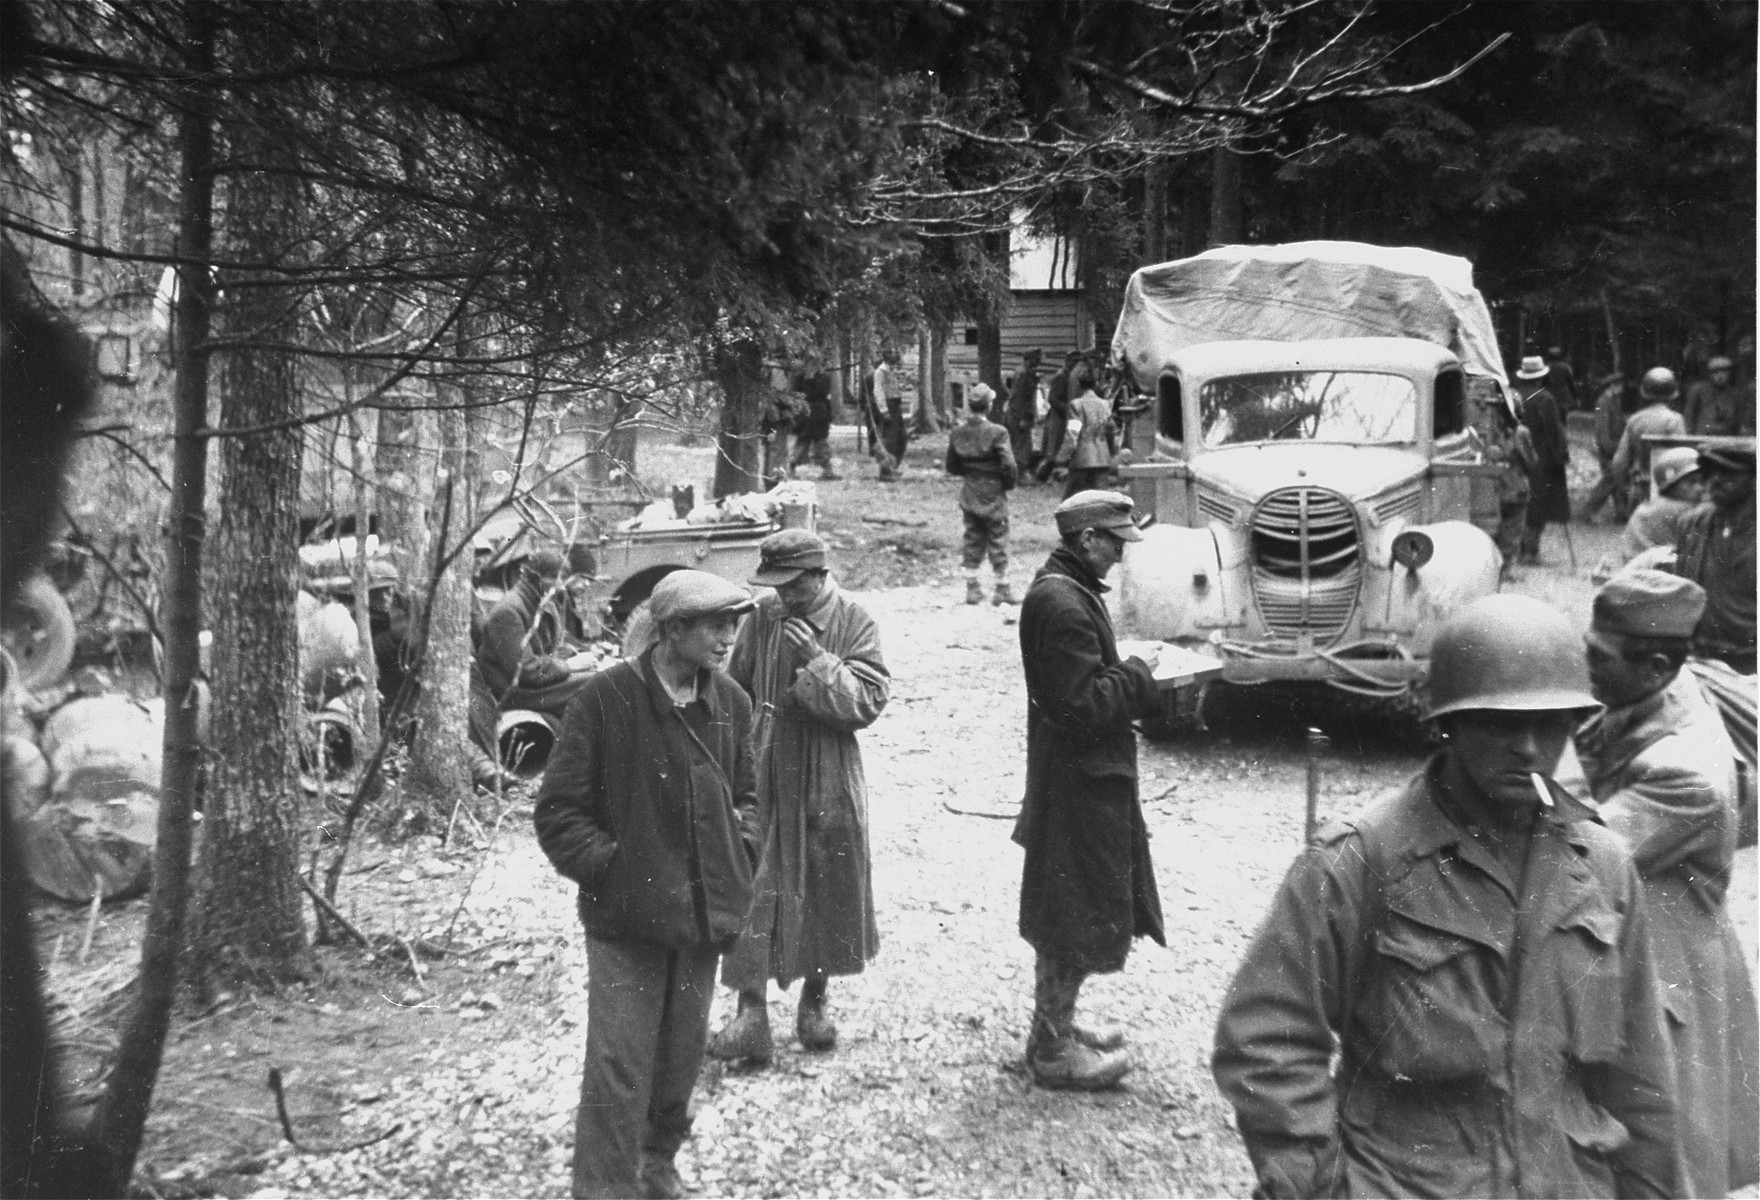 Survivors and American troops in Gunskirchen after liberation.